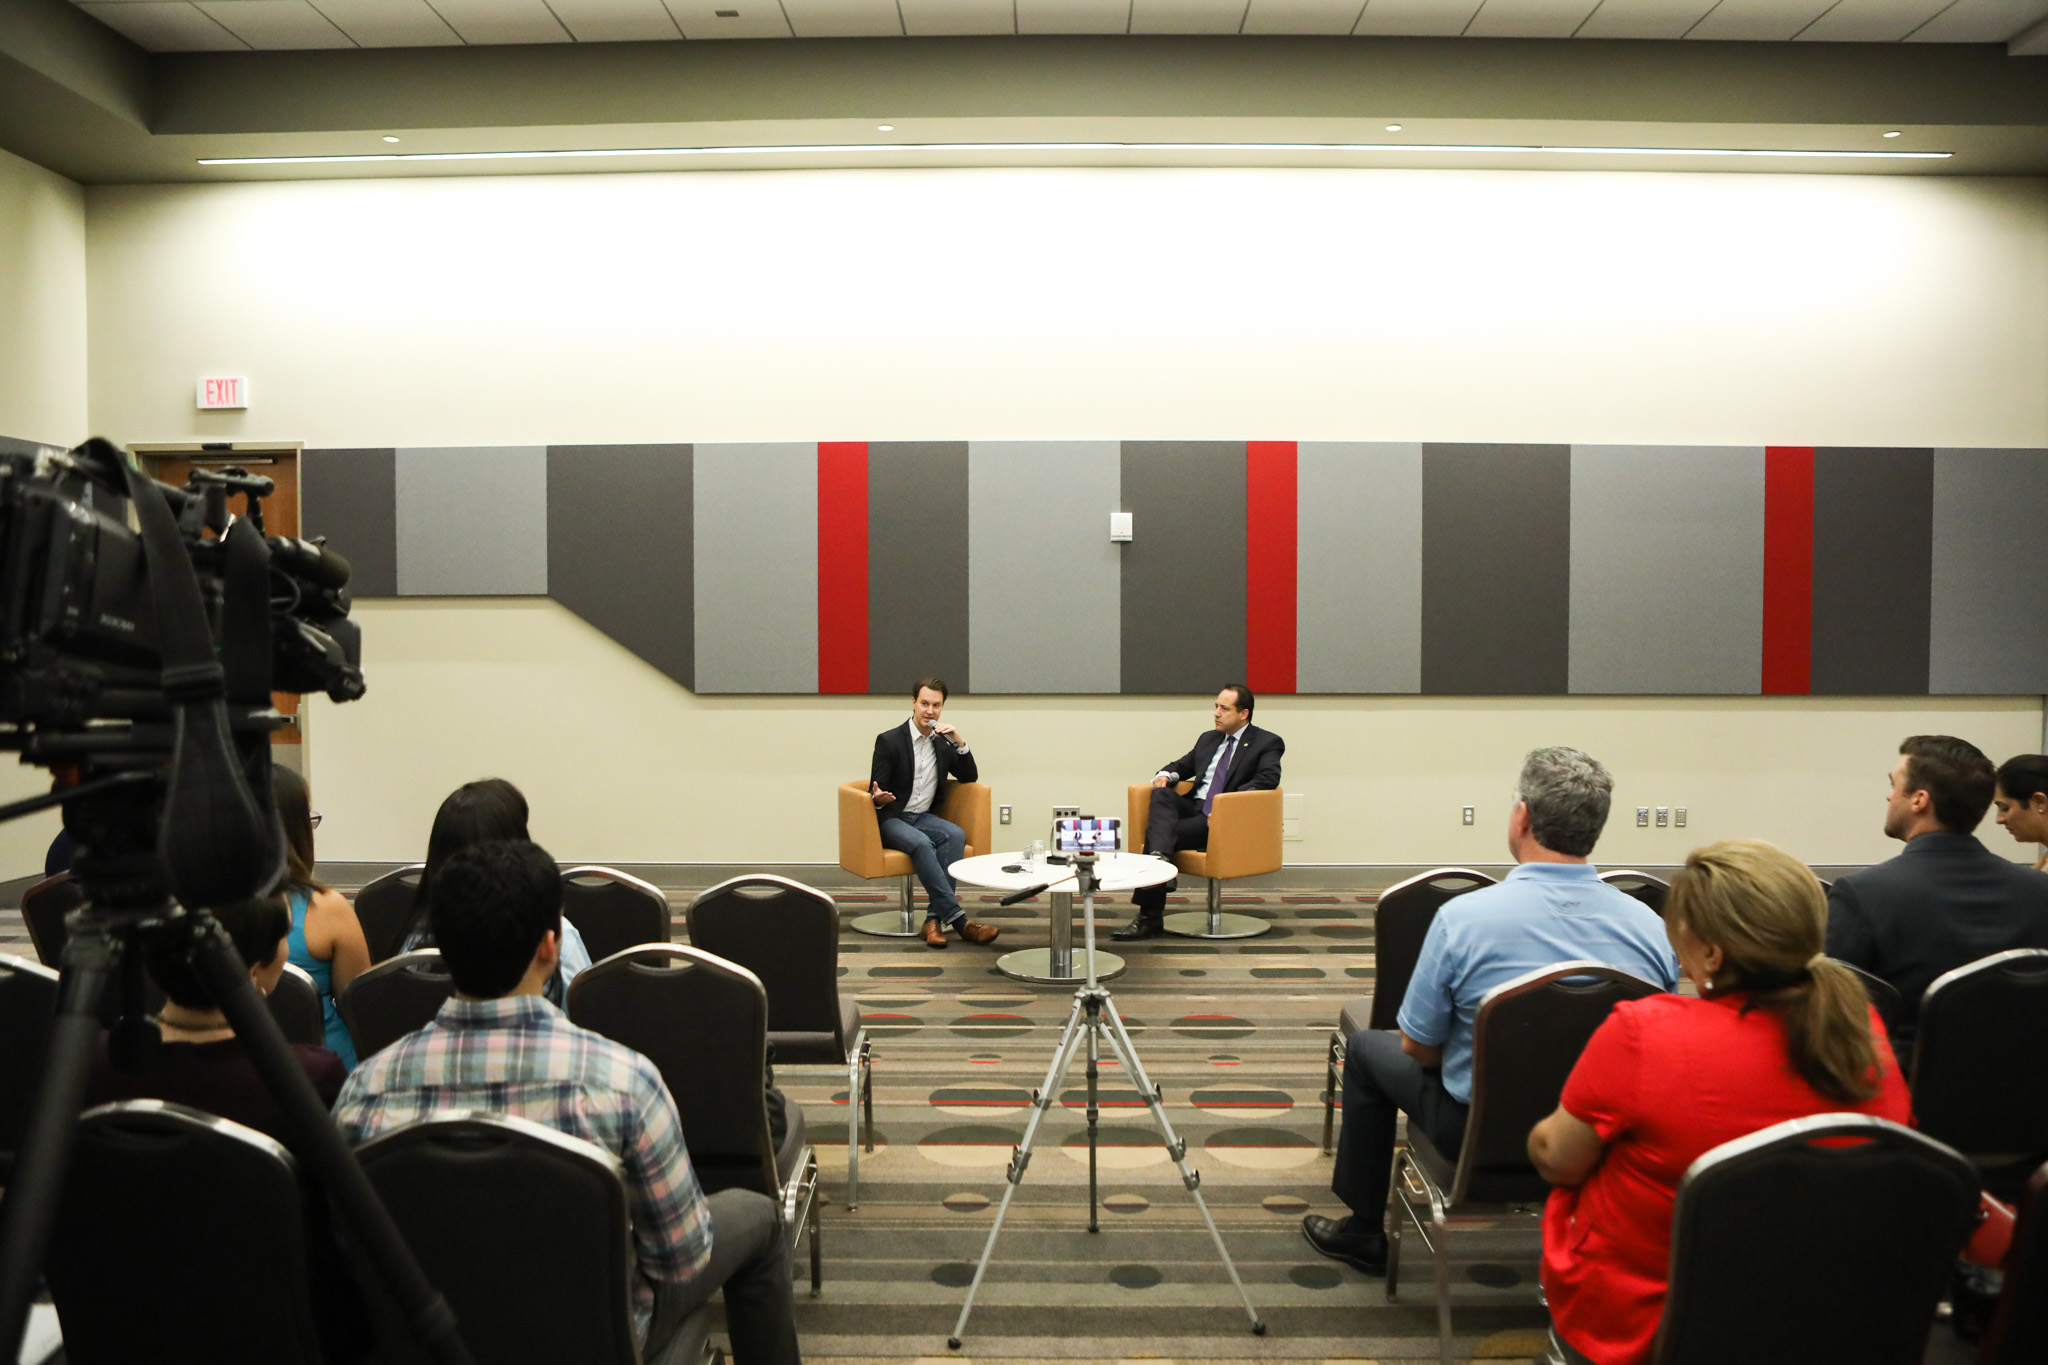 """(From left) Tech Bloc CEO David Heard and State Senator José Menéndez (D26) lead a press conference titled """"Bottom Line: Business Beyond Bathrooms"""" at the Henry B. Gonzalez Convention Center."""